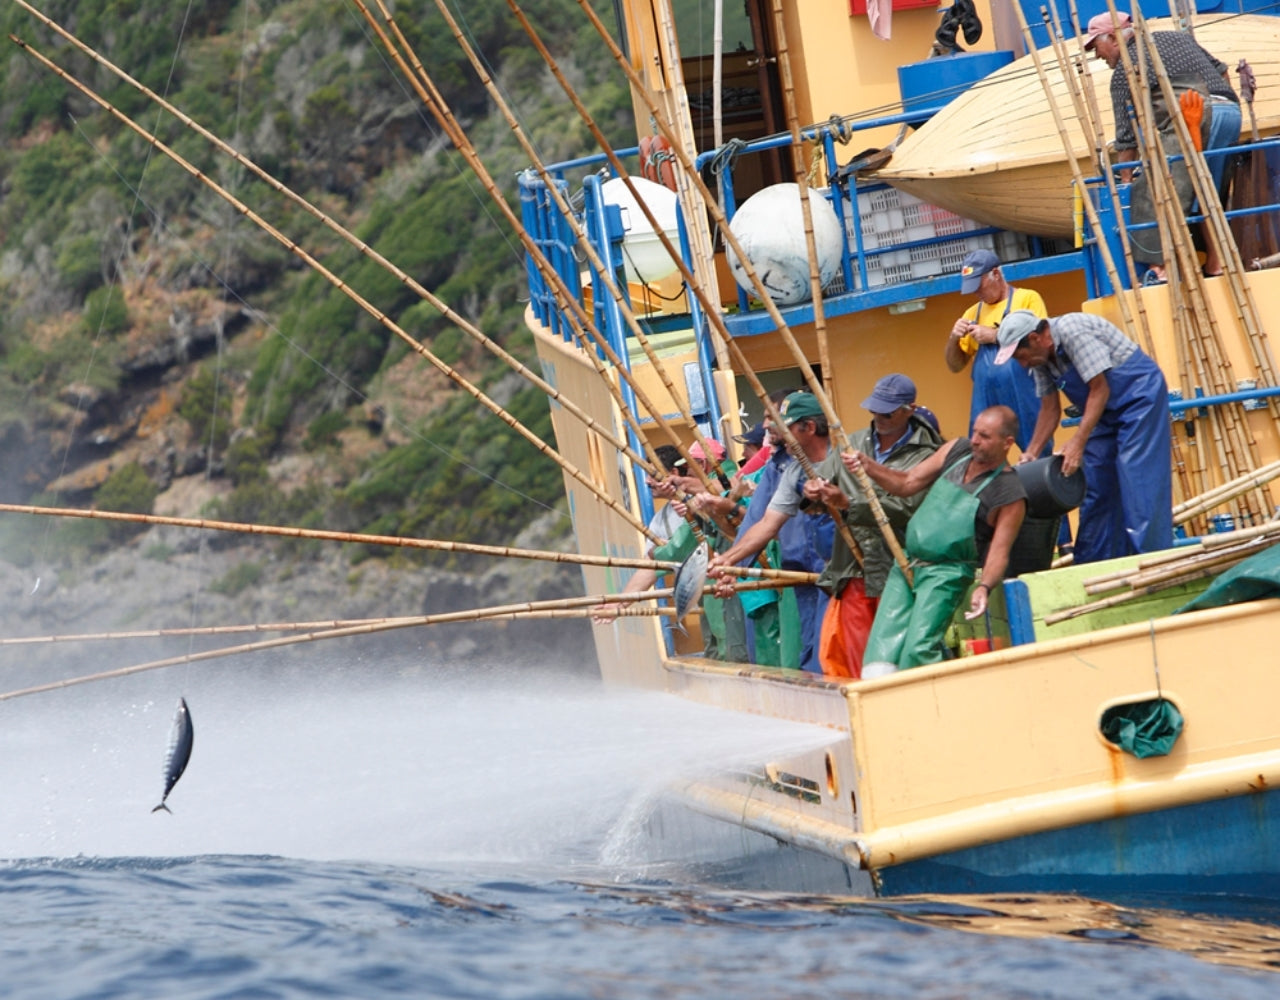 Tuna fishing with hook and line in the Azores